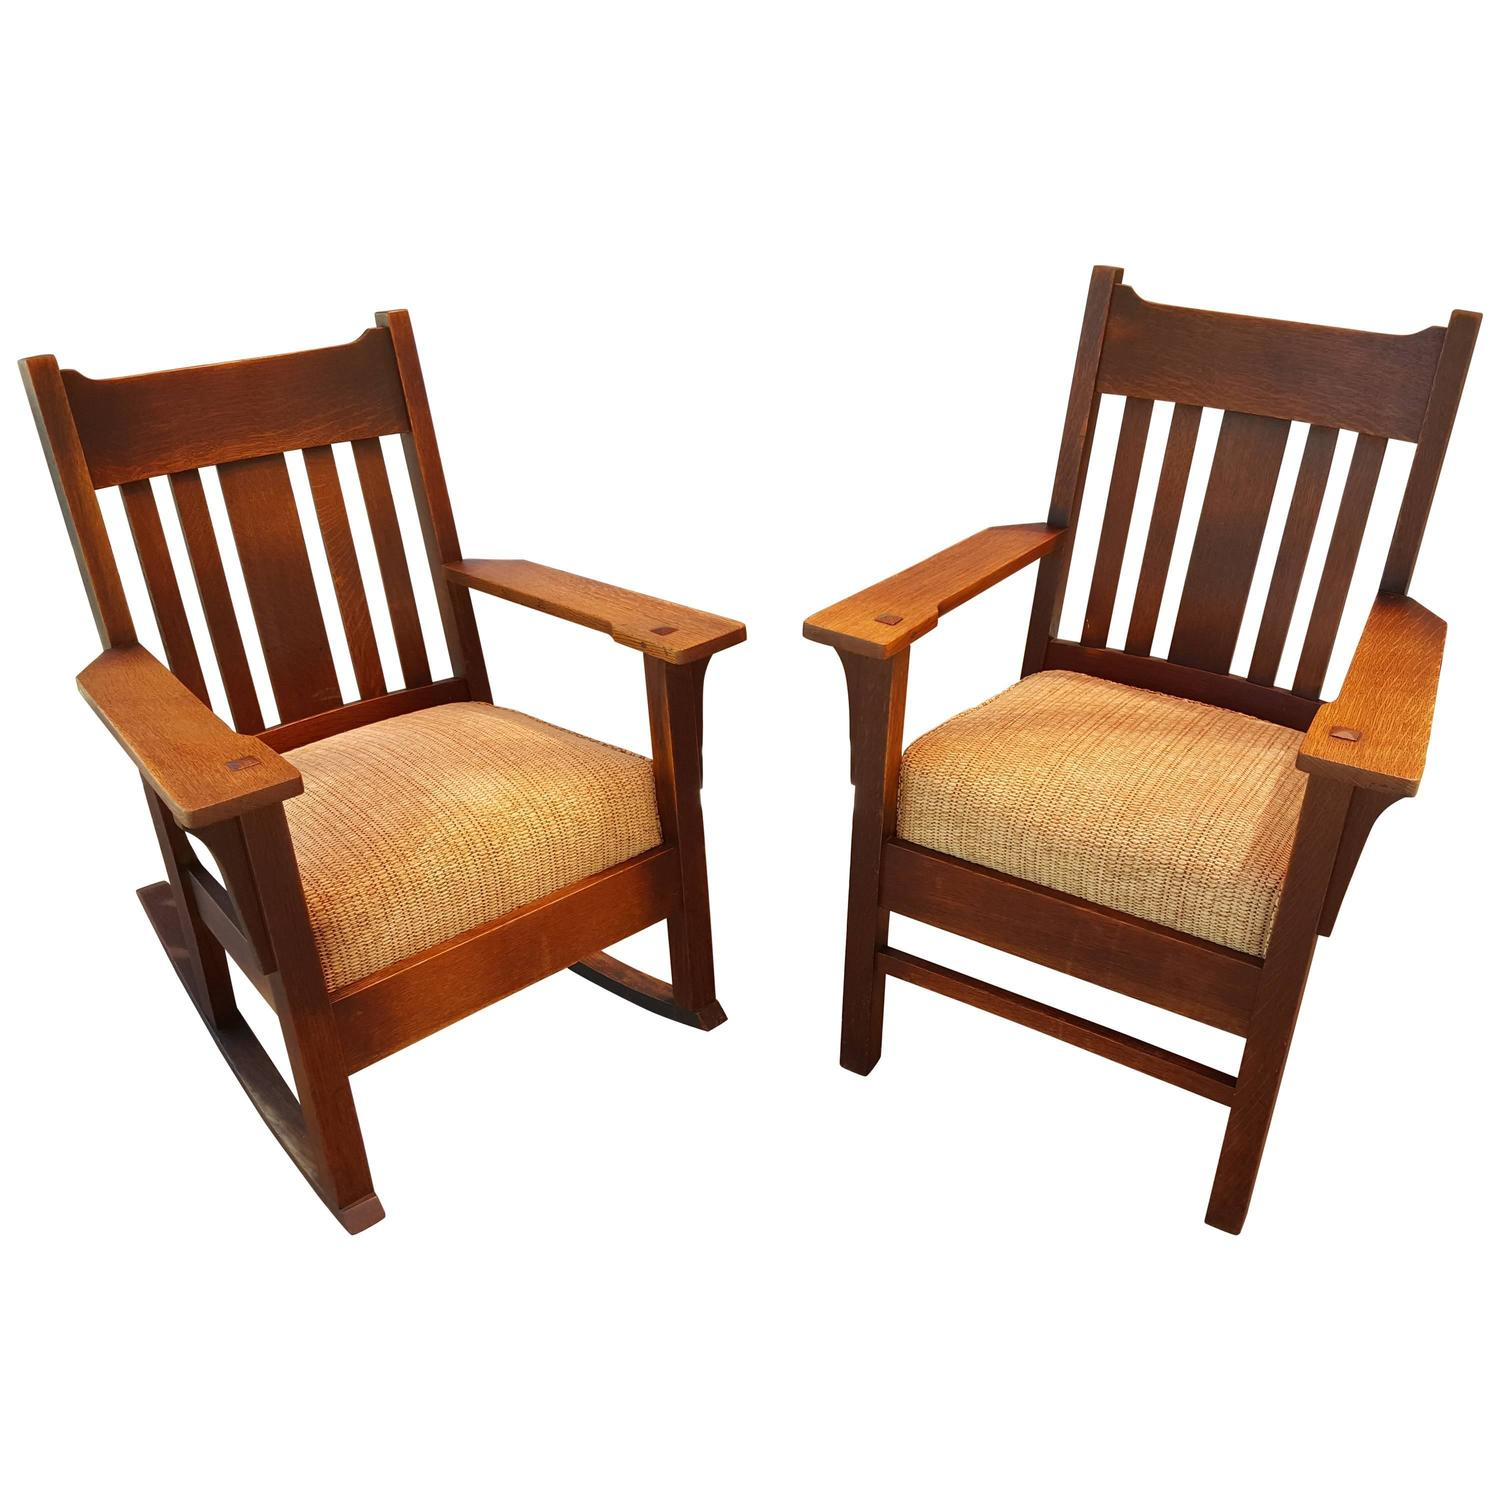 mission chairs for sale gym ball chair arts and crafts rocker armchair by harden